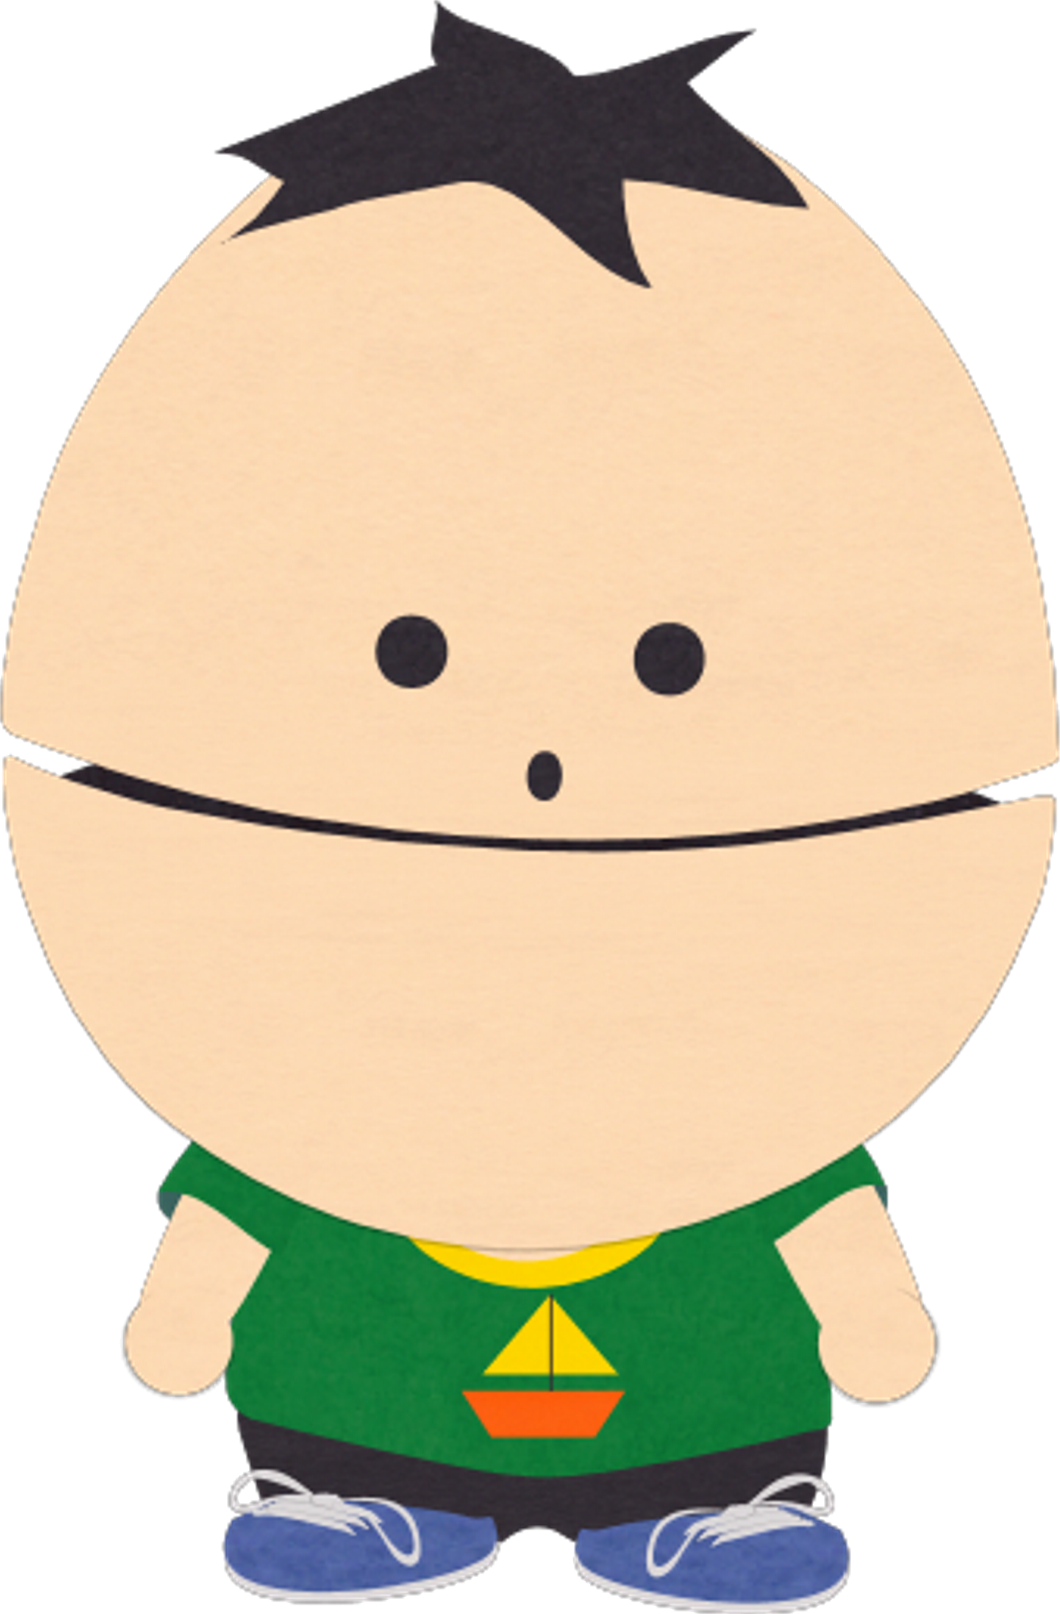 Image currently unavailable. Go to www.generator.safelyhack.com and choose South Park: Phone Destroyer image, you will be redirect to South Park: Phone Destroyer Generator site.